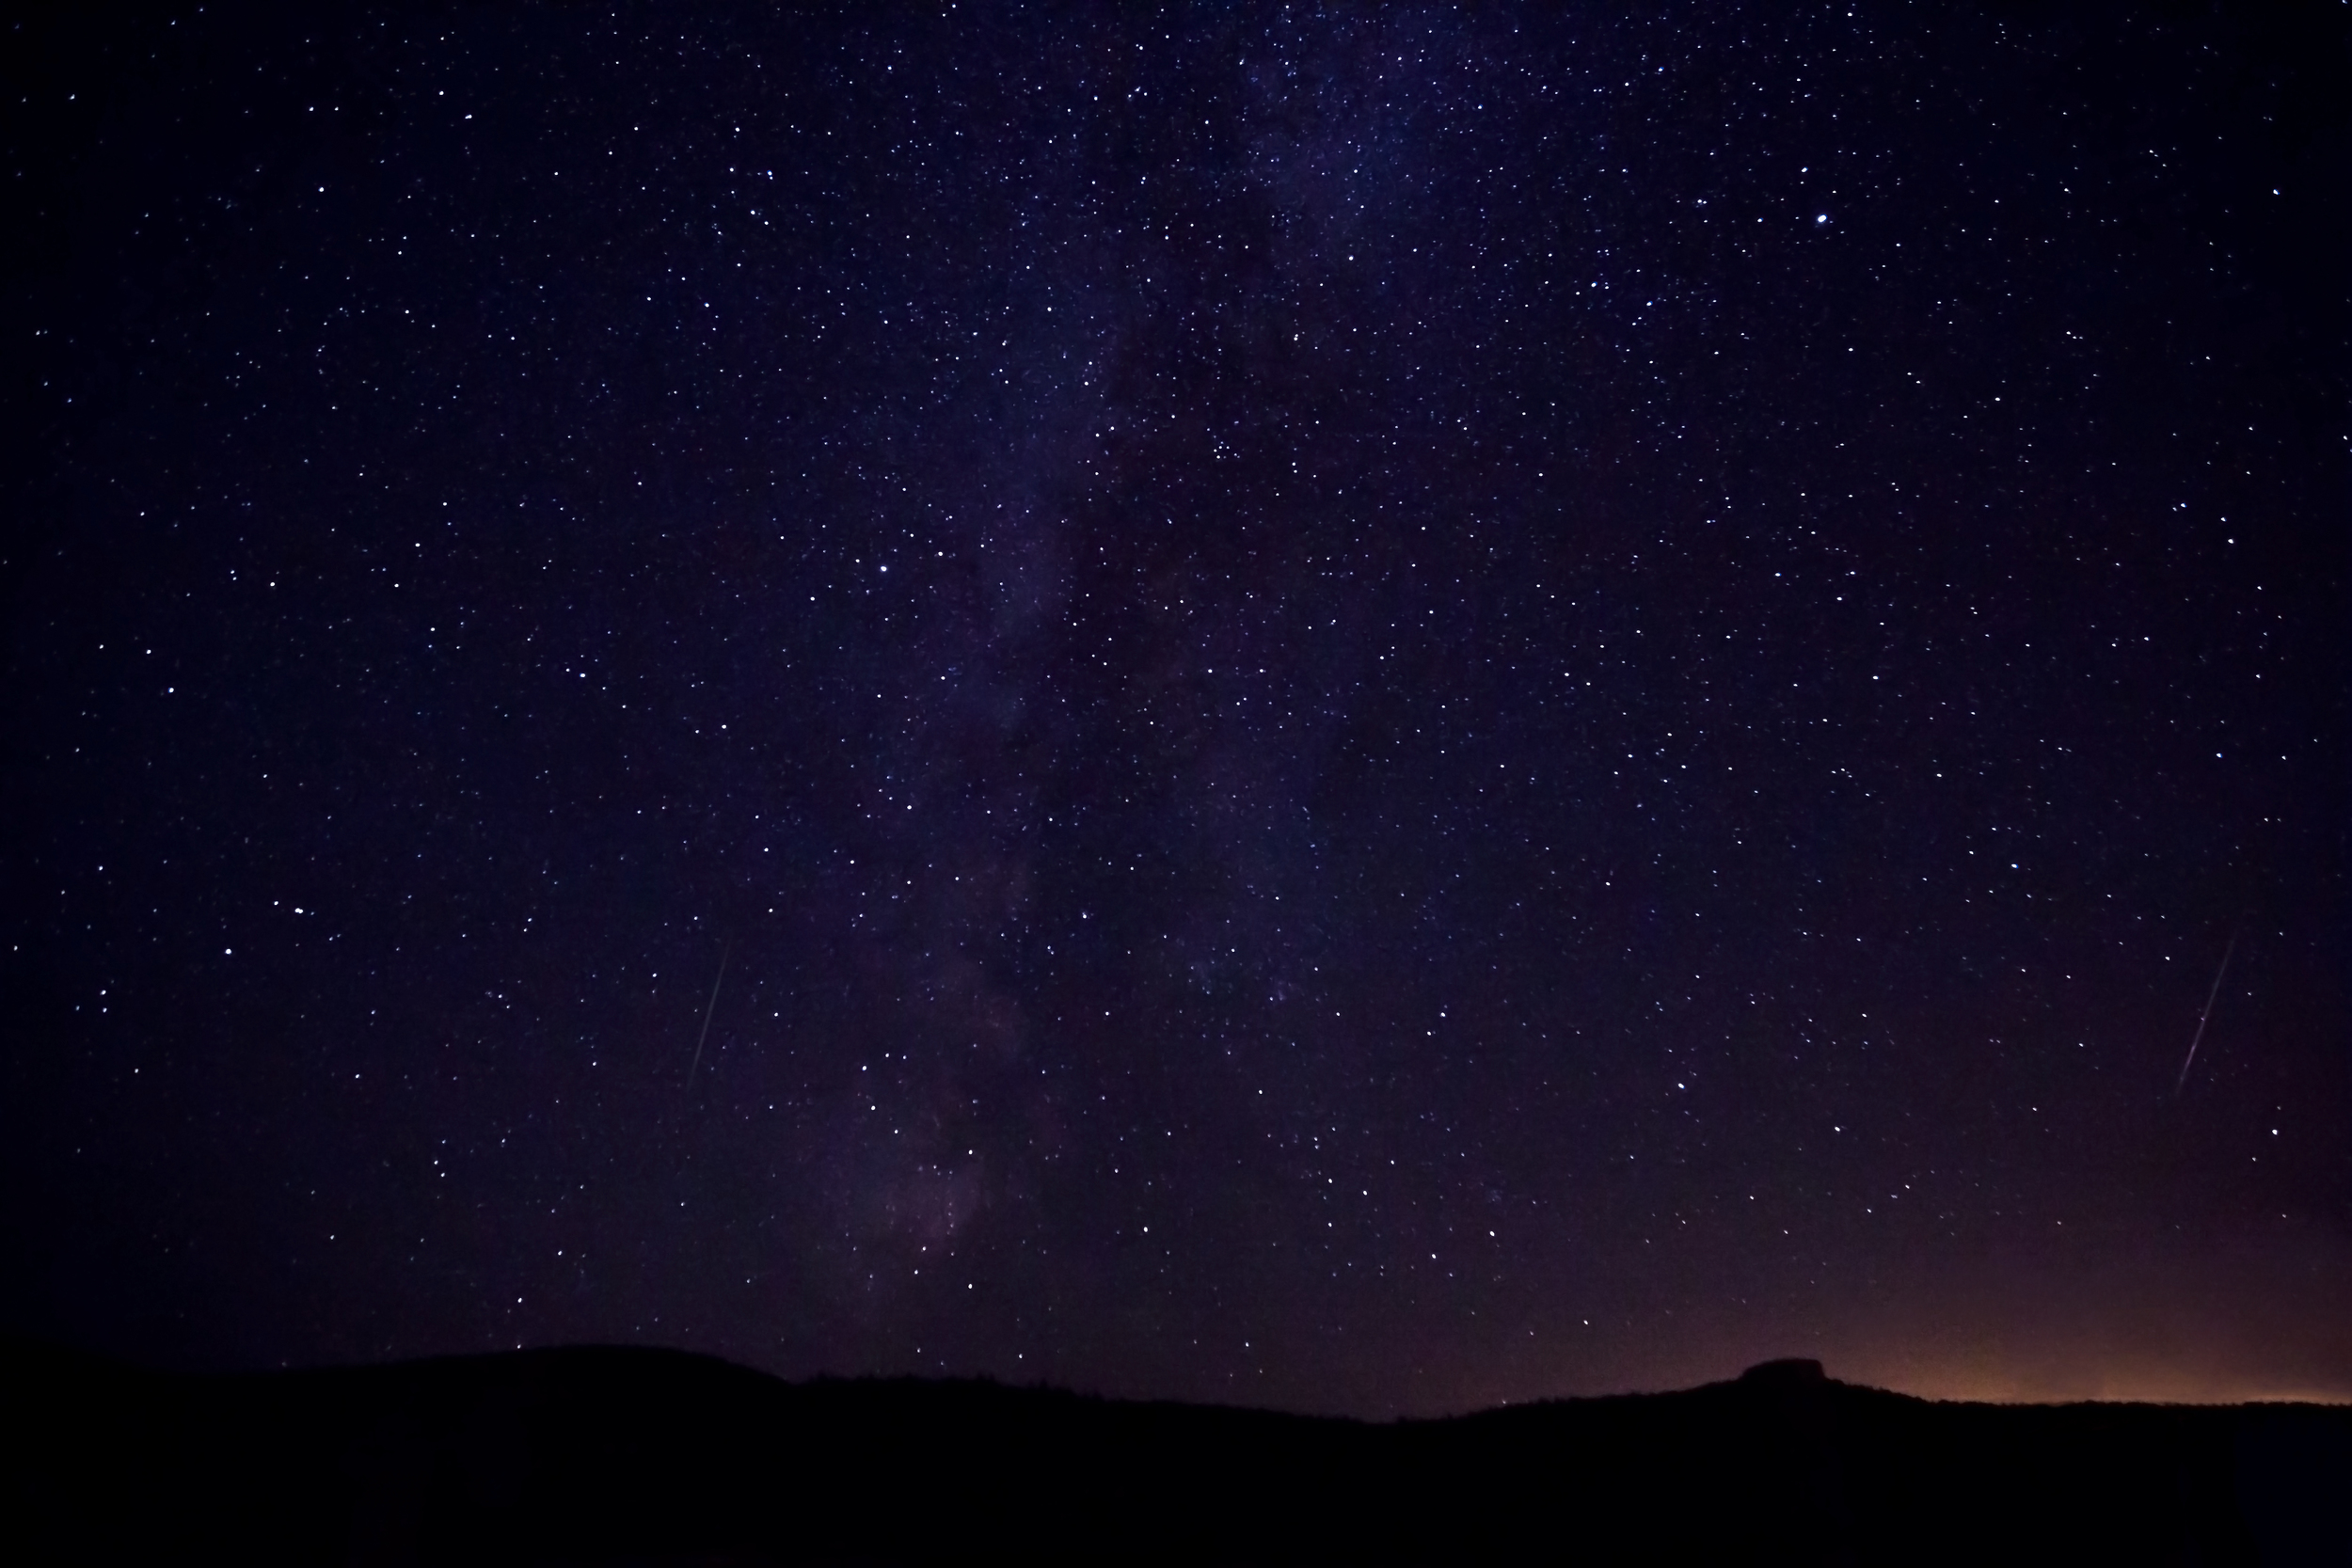 20130813-Perseid-Meteor-Shower-204.jpg